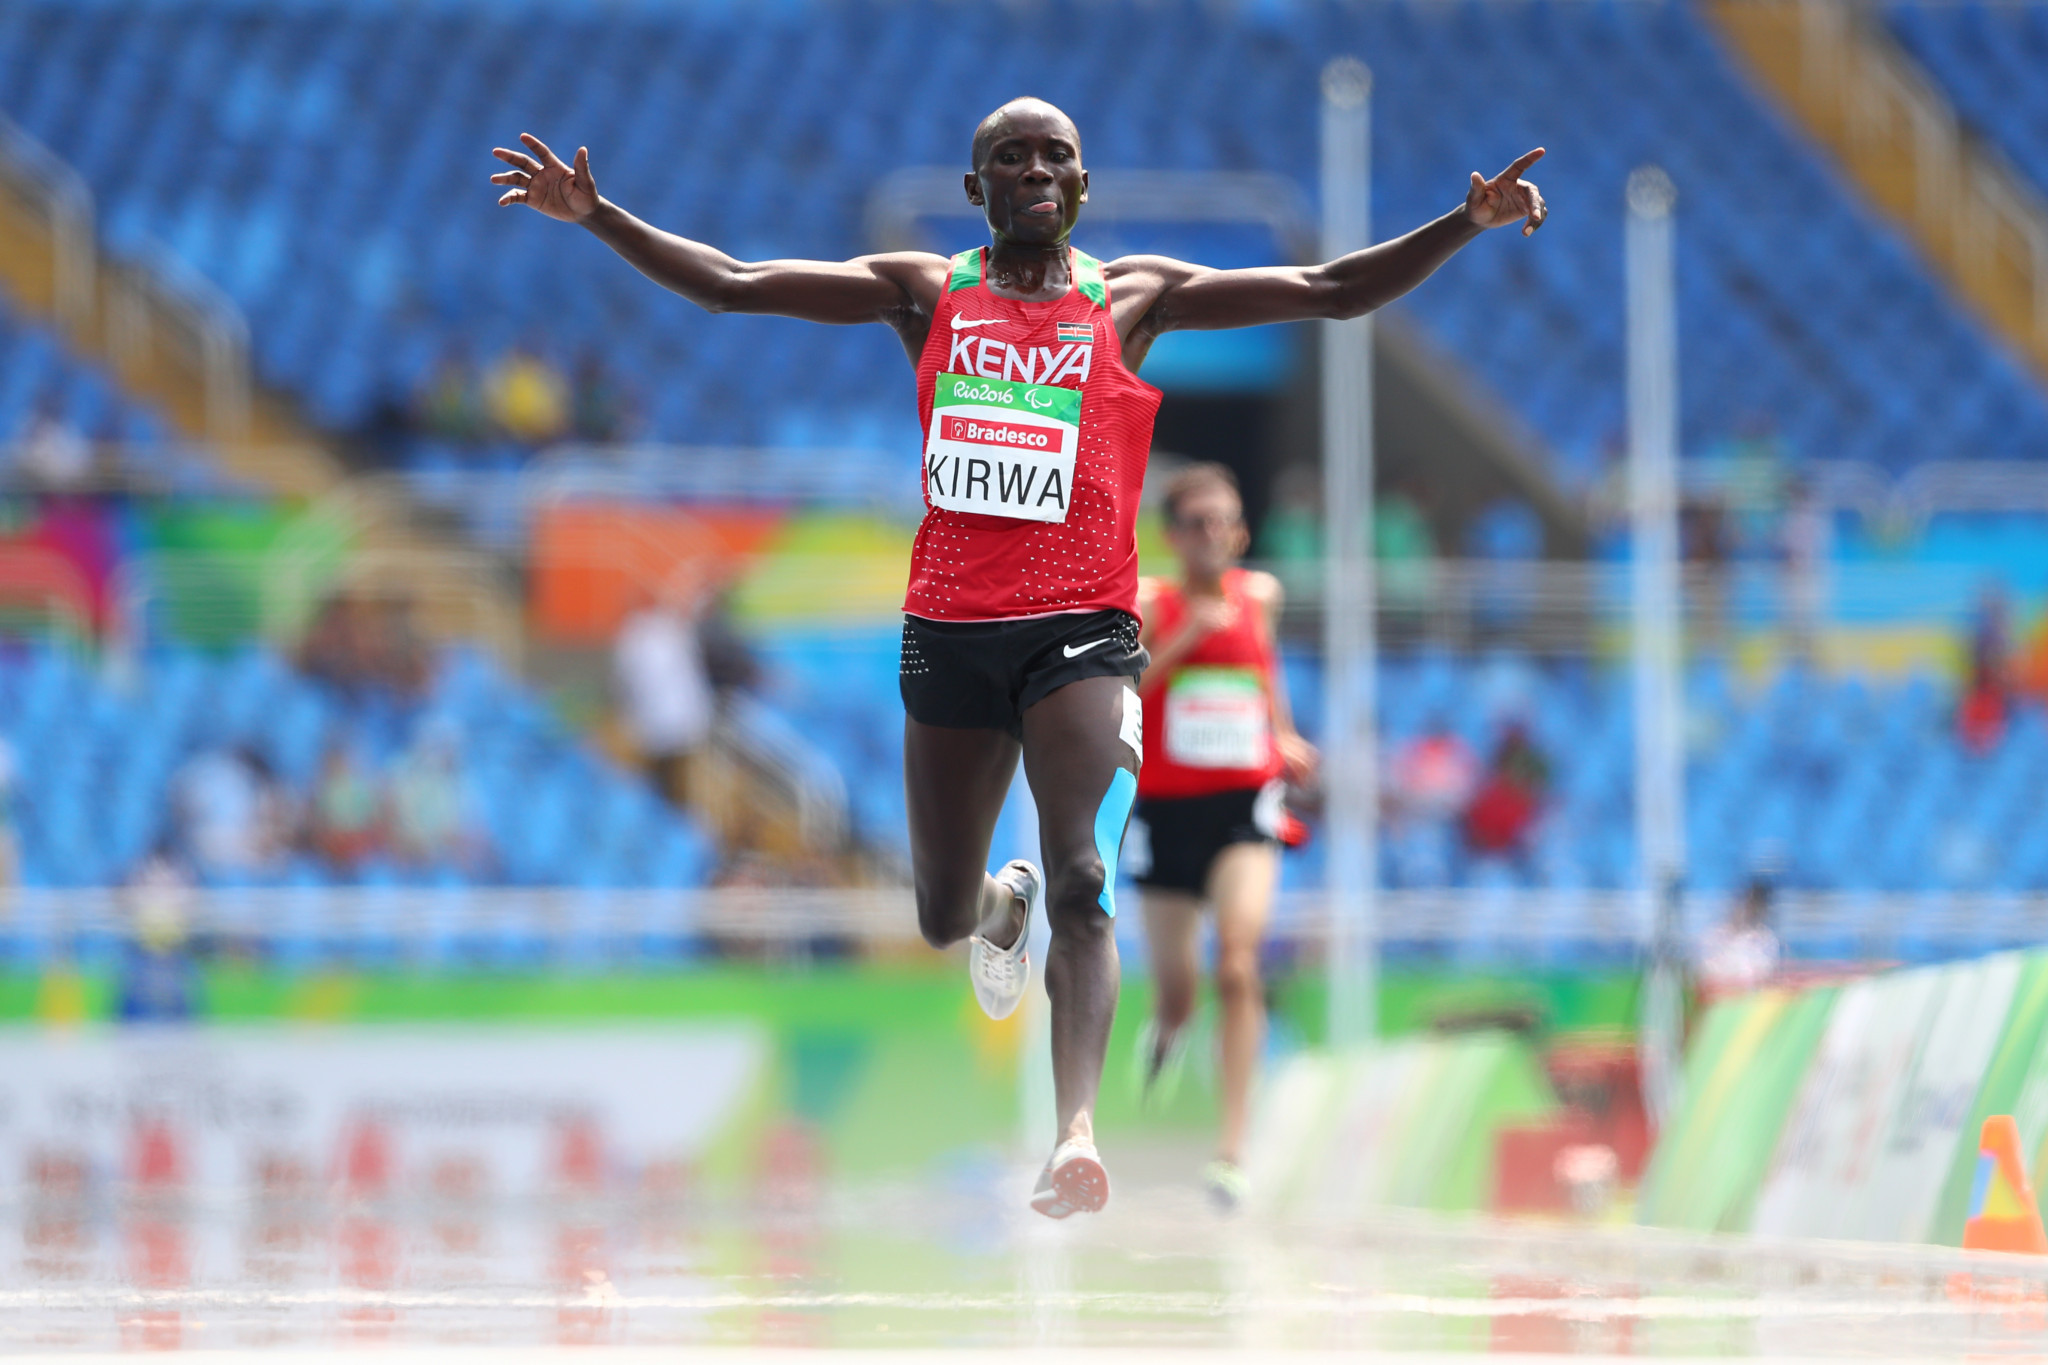 Henry Kirwa has earned four gold medals across three Paralympic Games during his career so far ©Getty Images